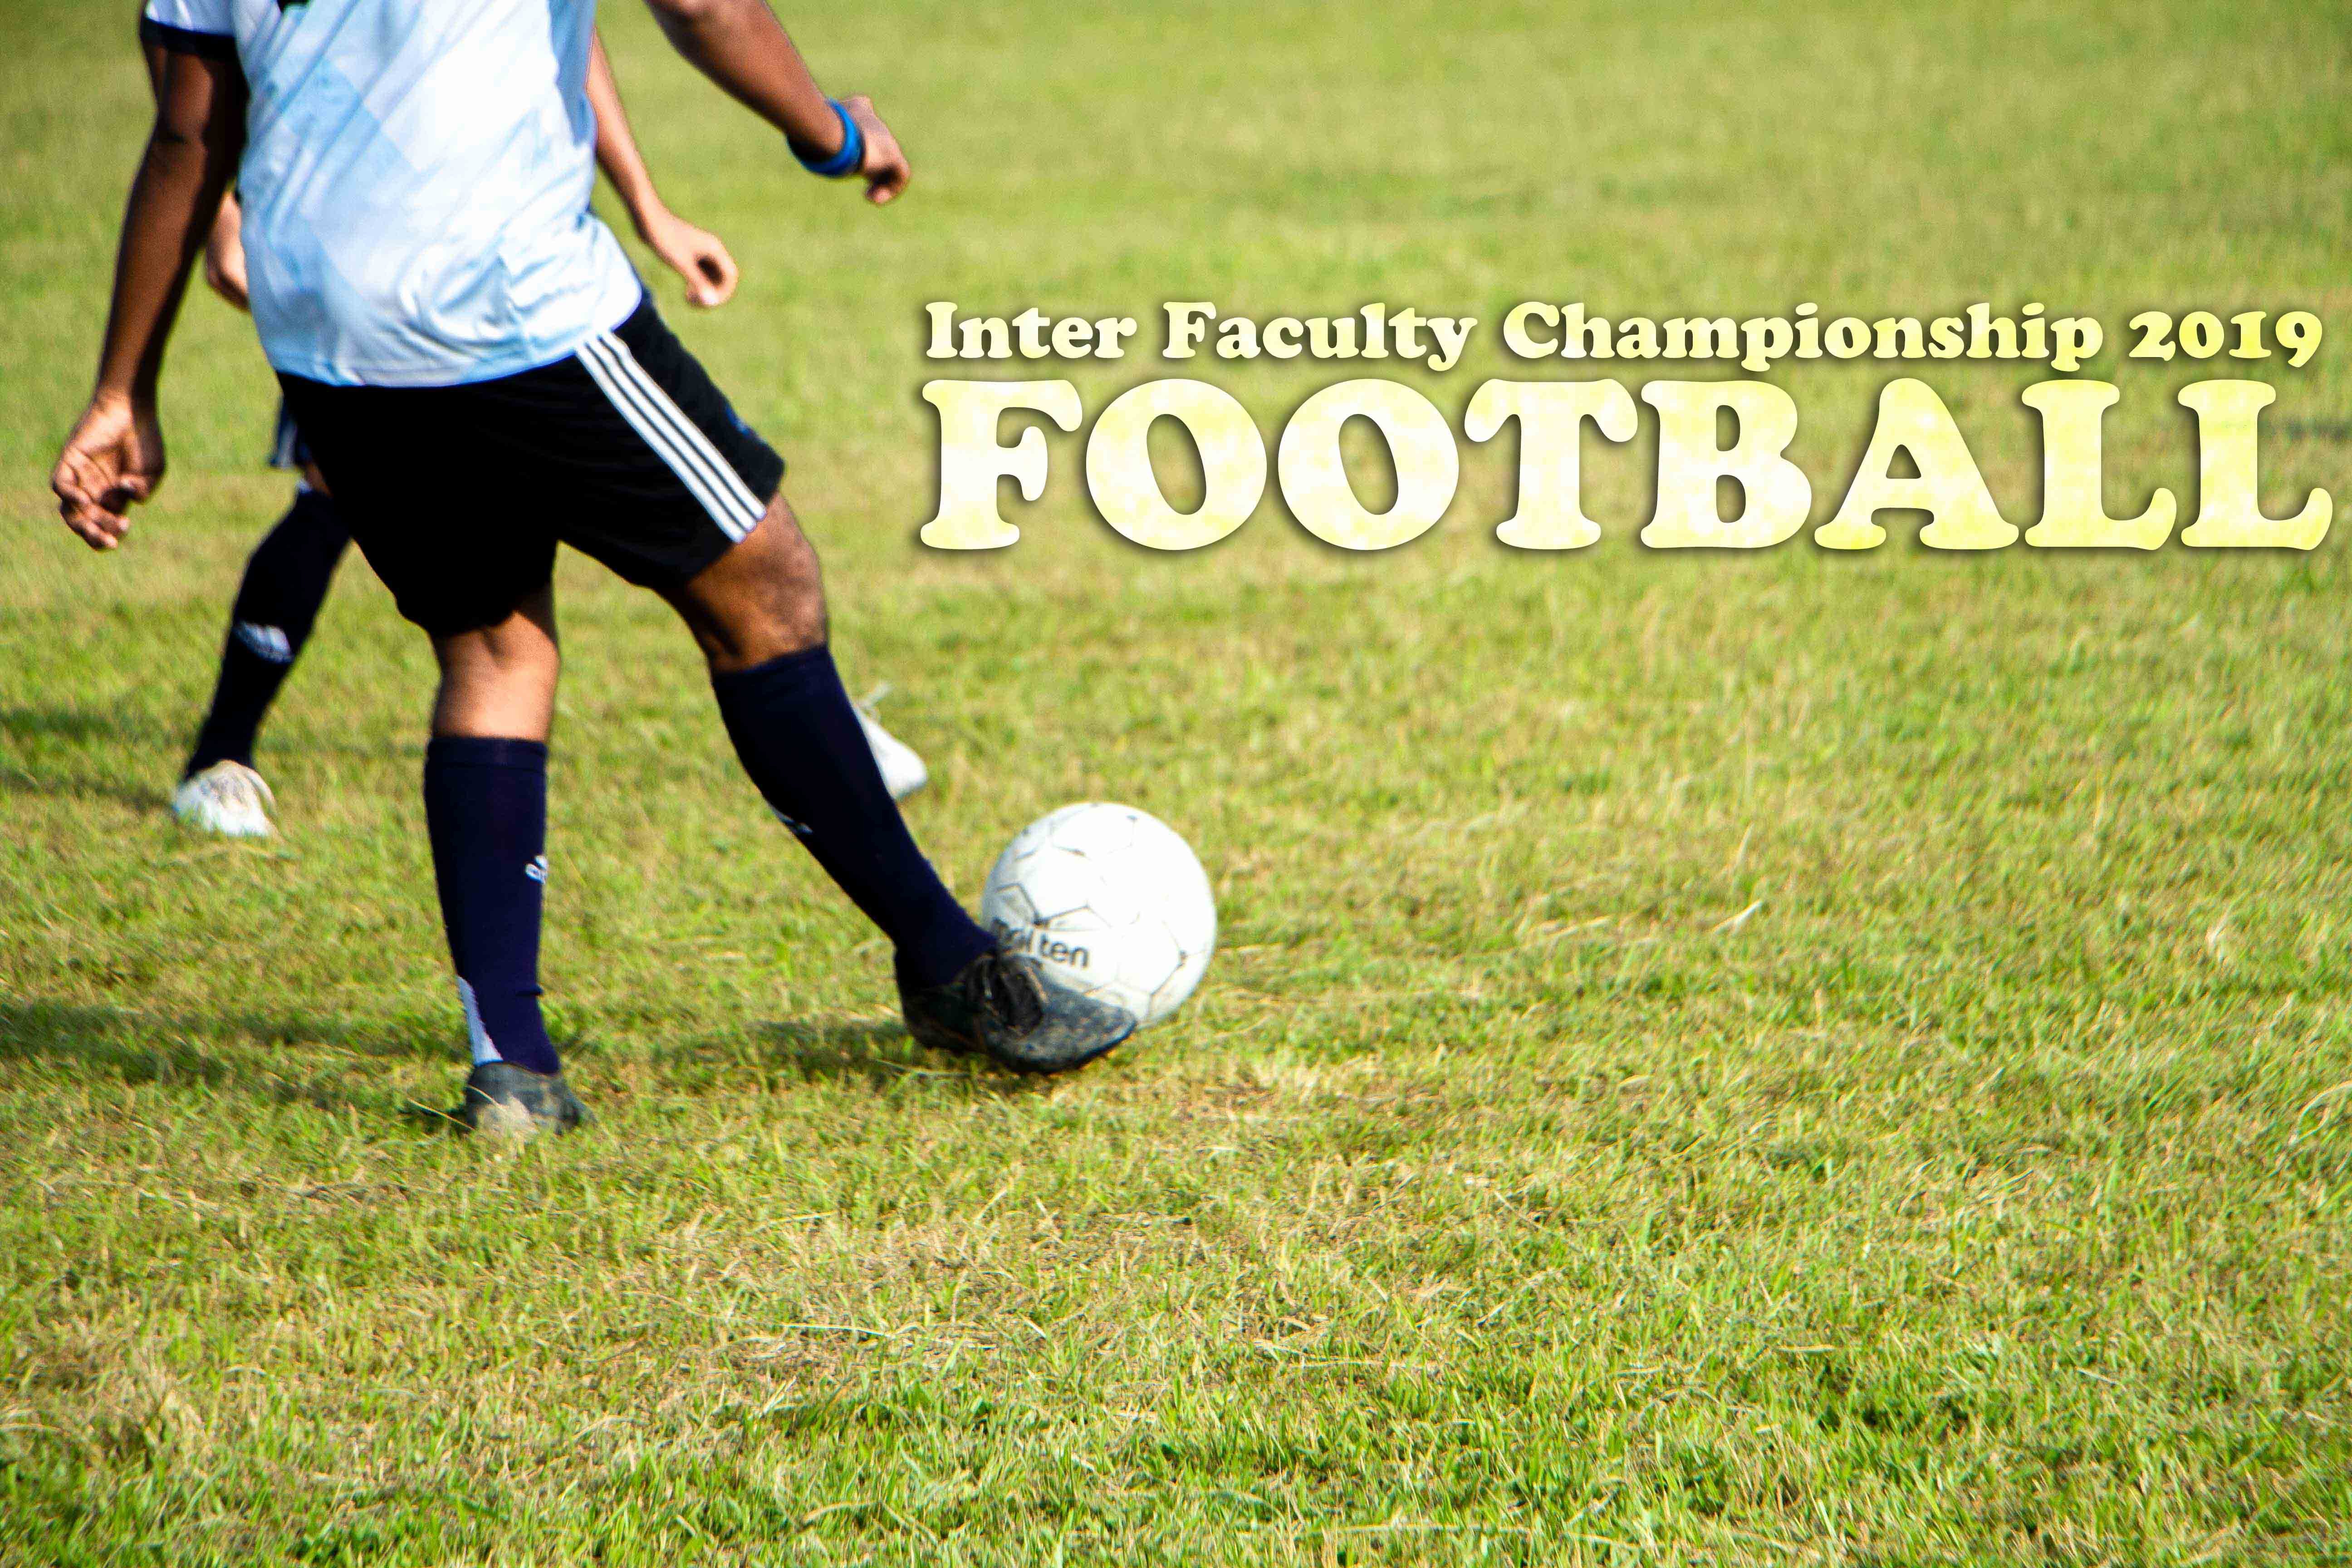 Football Tournament; Inter-Faculty Championship 2019